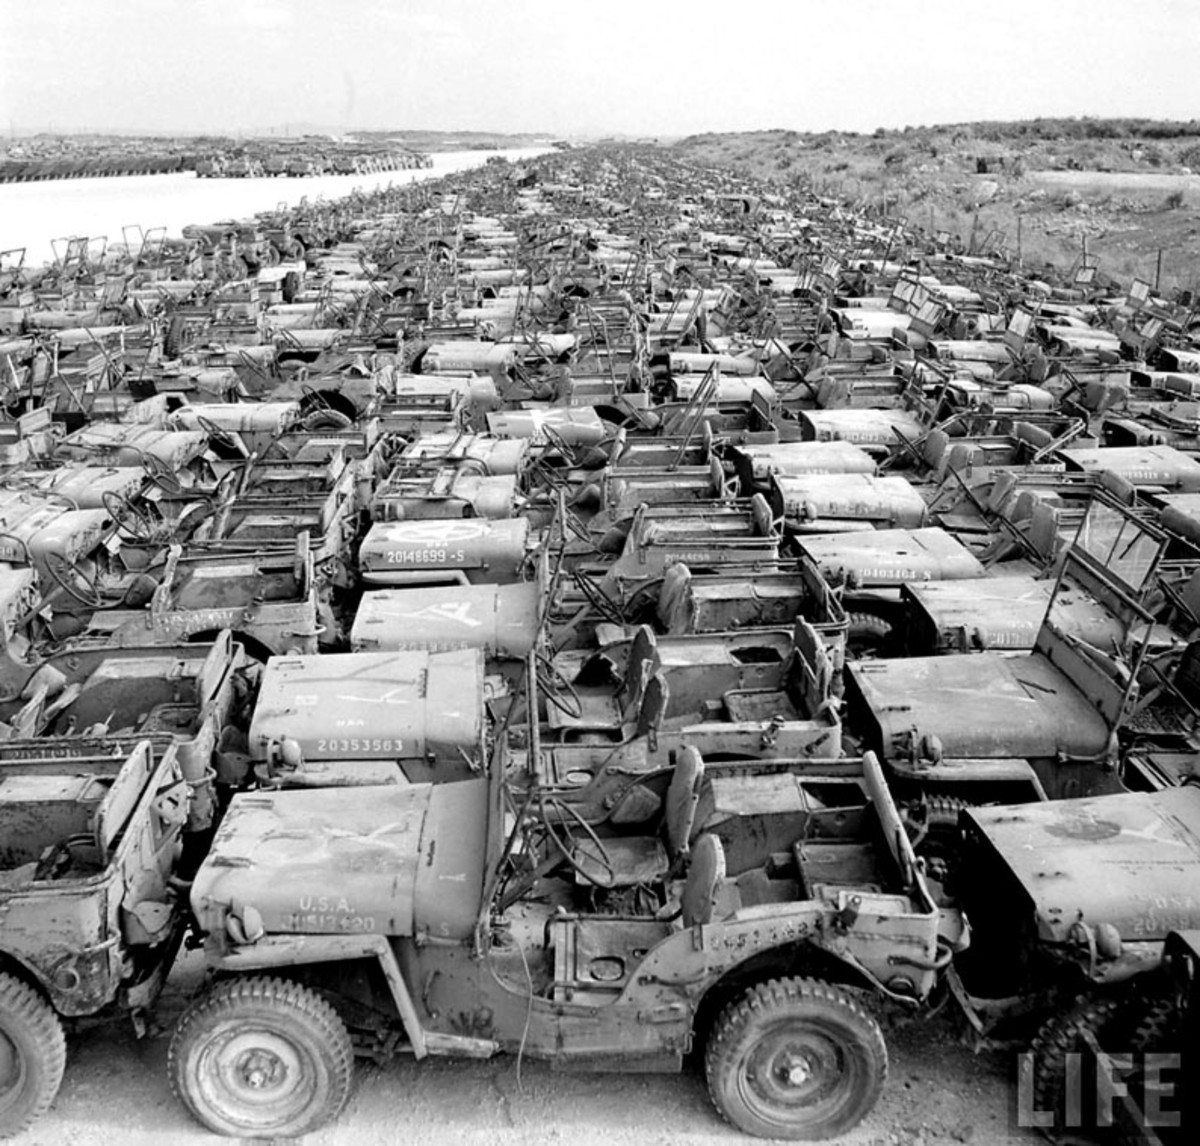 Military Junkyards And Graveyards For Scrap Vehicles